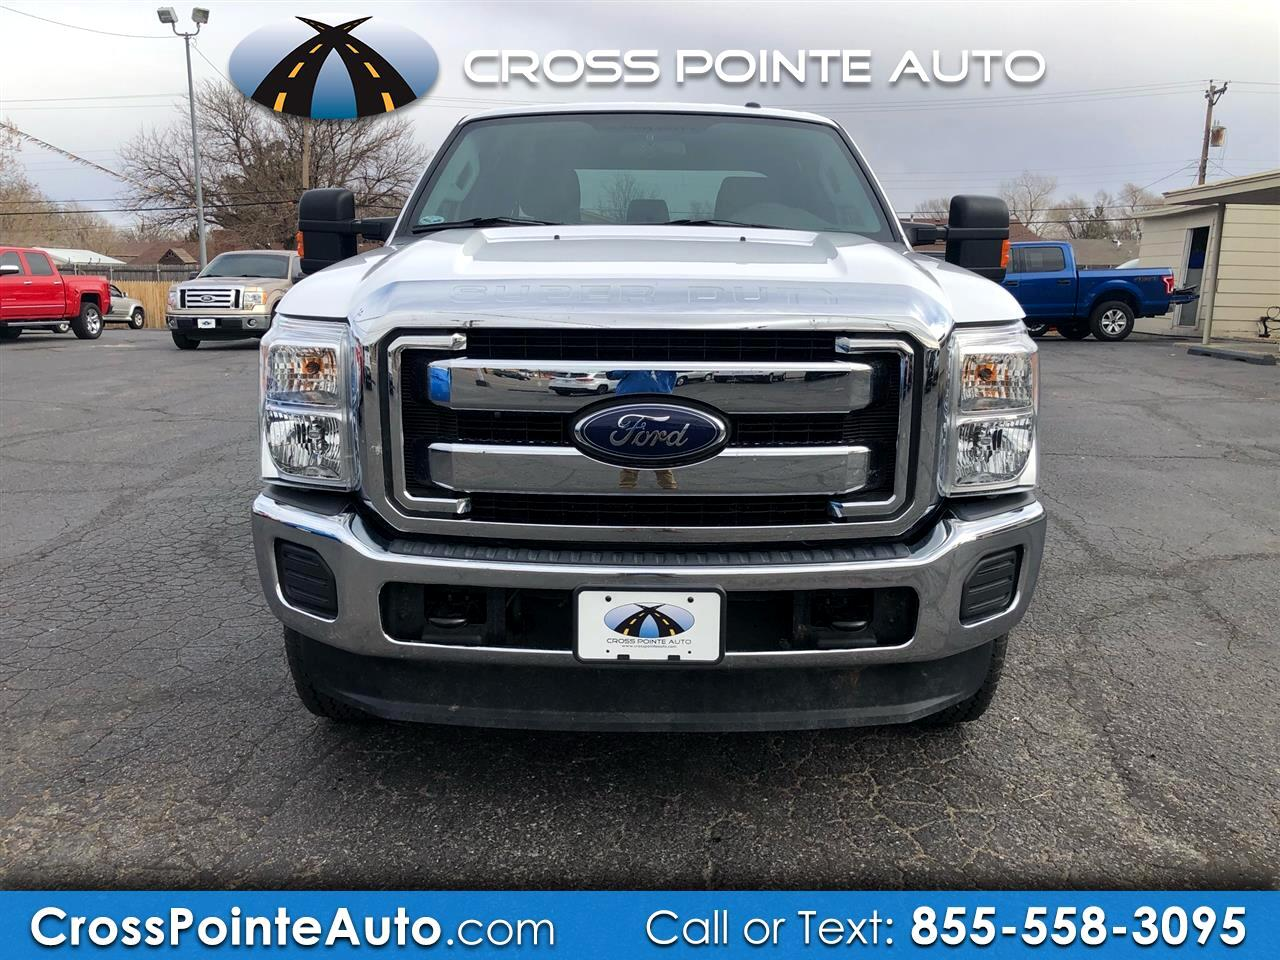 Used Cars For Sale Amarillo Tx 79109 Cross Pointe Auto 2004 Ford F 250 Lariat Texas 2016 Sd King Ranch Crew Cab 4wd